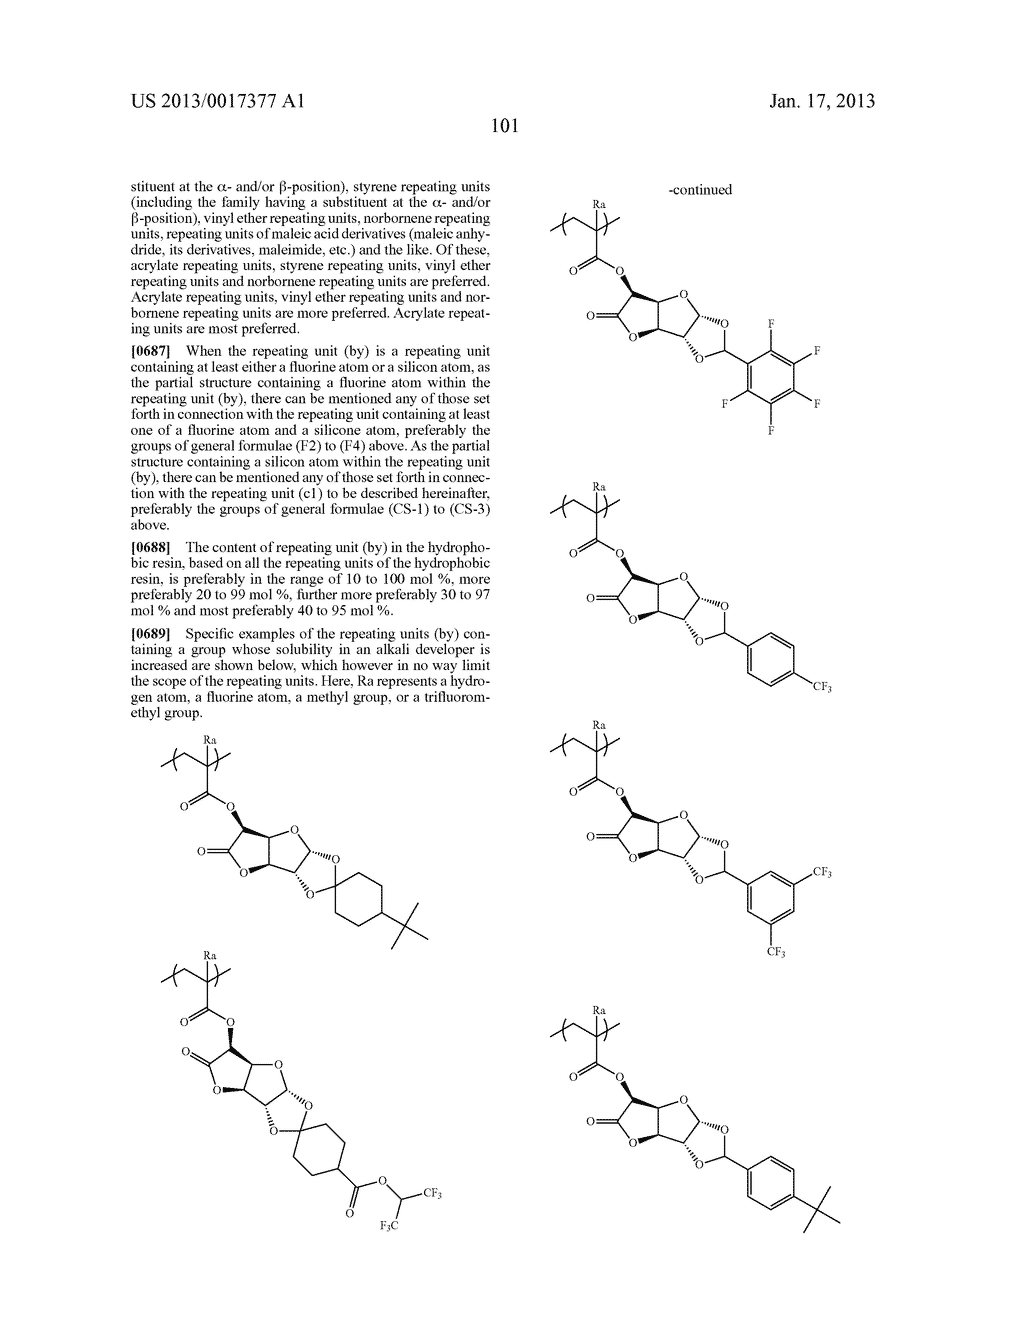 ACTINIC-RAY- OR RADIATION-SENSITIVE RESIN COMPOSITION AND METHOD OF     FORMING PATTERN USING THE SAMEAANM Kataoka; ShoheiAACI ShizuokaAACO JPAAGP Kataoka; Shohei Shizuoka JPAANM Iwato; KaoruAACI ShizuokaAACO JPAAGP Iwato; Kaoru Shizuoka JPAANM Kamimura; SouAACI ShizuokaAACO JPAAGP Kamimura; Sou Shizuoka JPAANM Tsuchihashi; ToruAACI ShizuokaAACO JPAAGP Tsuchihashi; Toru Shizuoka JPAANM Enomoto; YuichiroAACI ShizuokaAACO JPAAGP Enomoto; Yuichiro Shizuoka JPAANM Fujii; KanaAACI ShizuokaAACO JPAAGP Fujii; Kana Shizuoka JPAANM Mizutani; KazuyoshiAACI ShizuokaAACO JPAAGP Mizutani; Kazuyoshi Shizuoka JPAANM Tarutani; ShinjiAACI ShizuokaAACO JPAAGP Tarutani; Shinji Shizuoka JPAANM Kato; KeitaAACI ShizuokaAACO JPAAGP Kato; Keita Shizuoka JP - diagram, schematic, and image 102